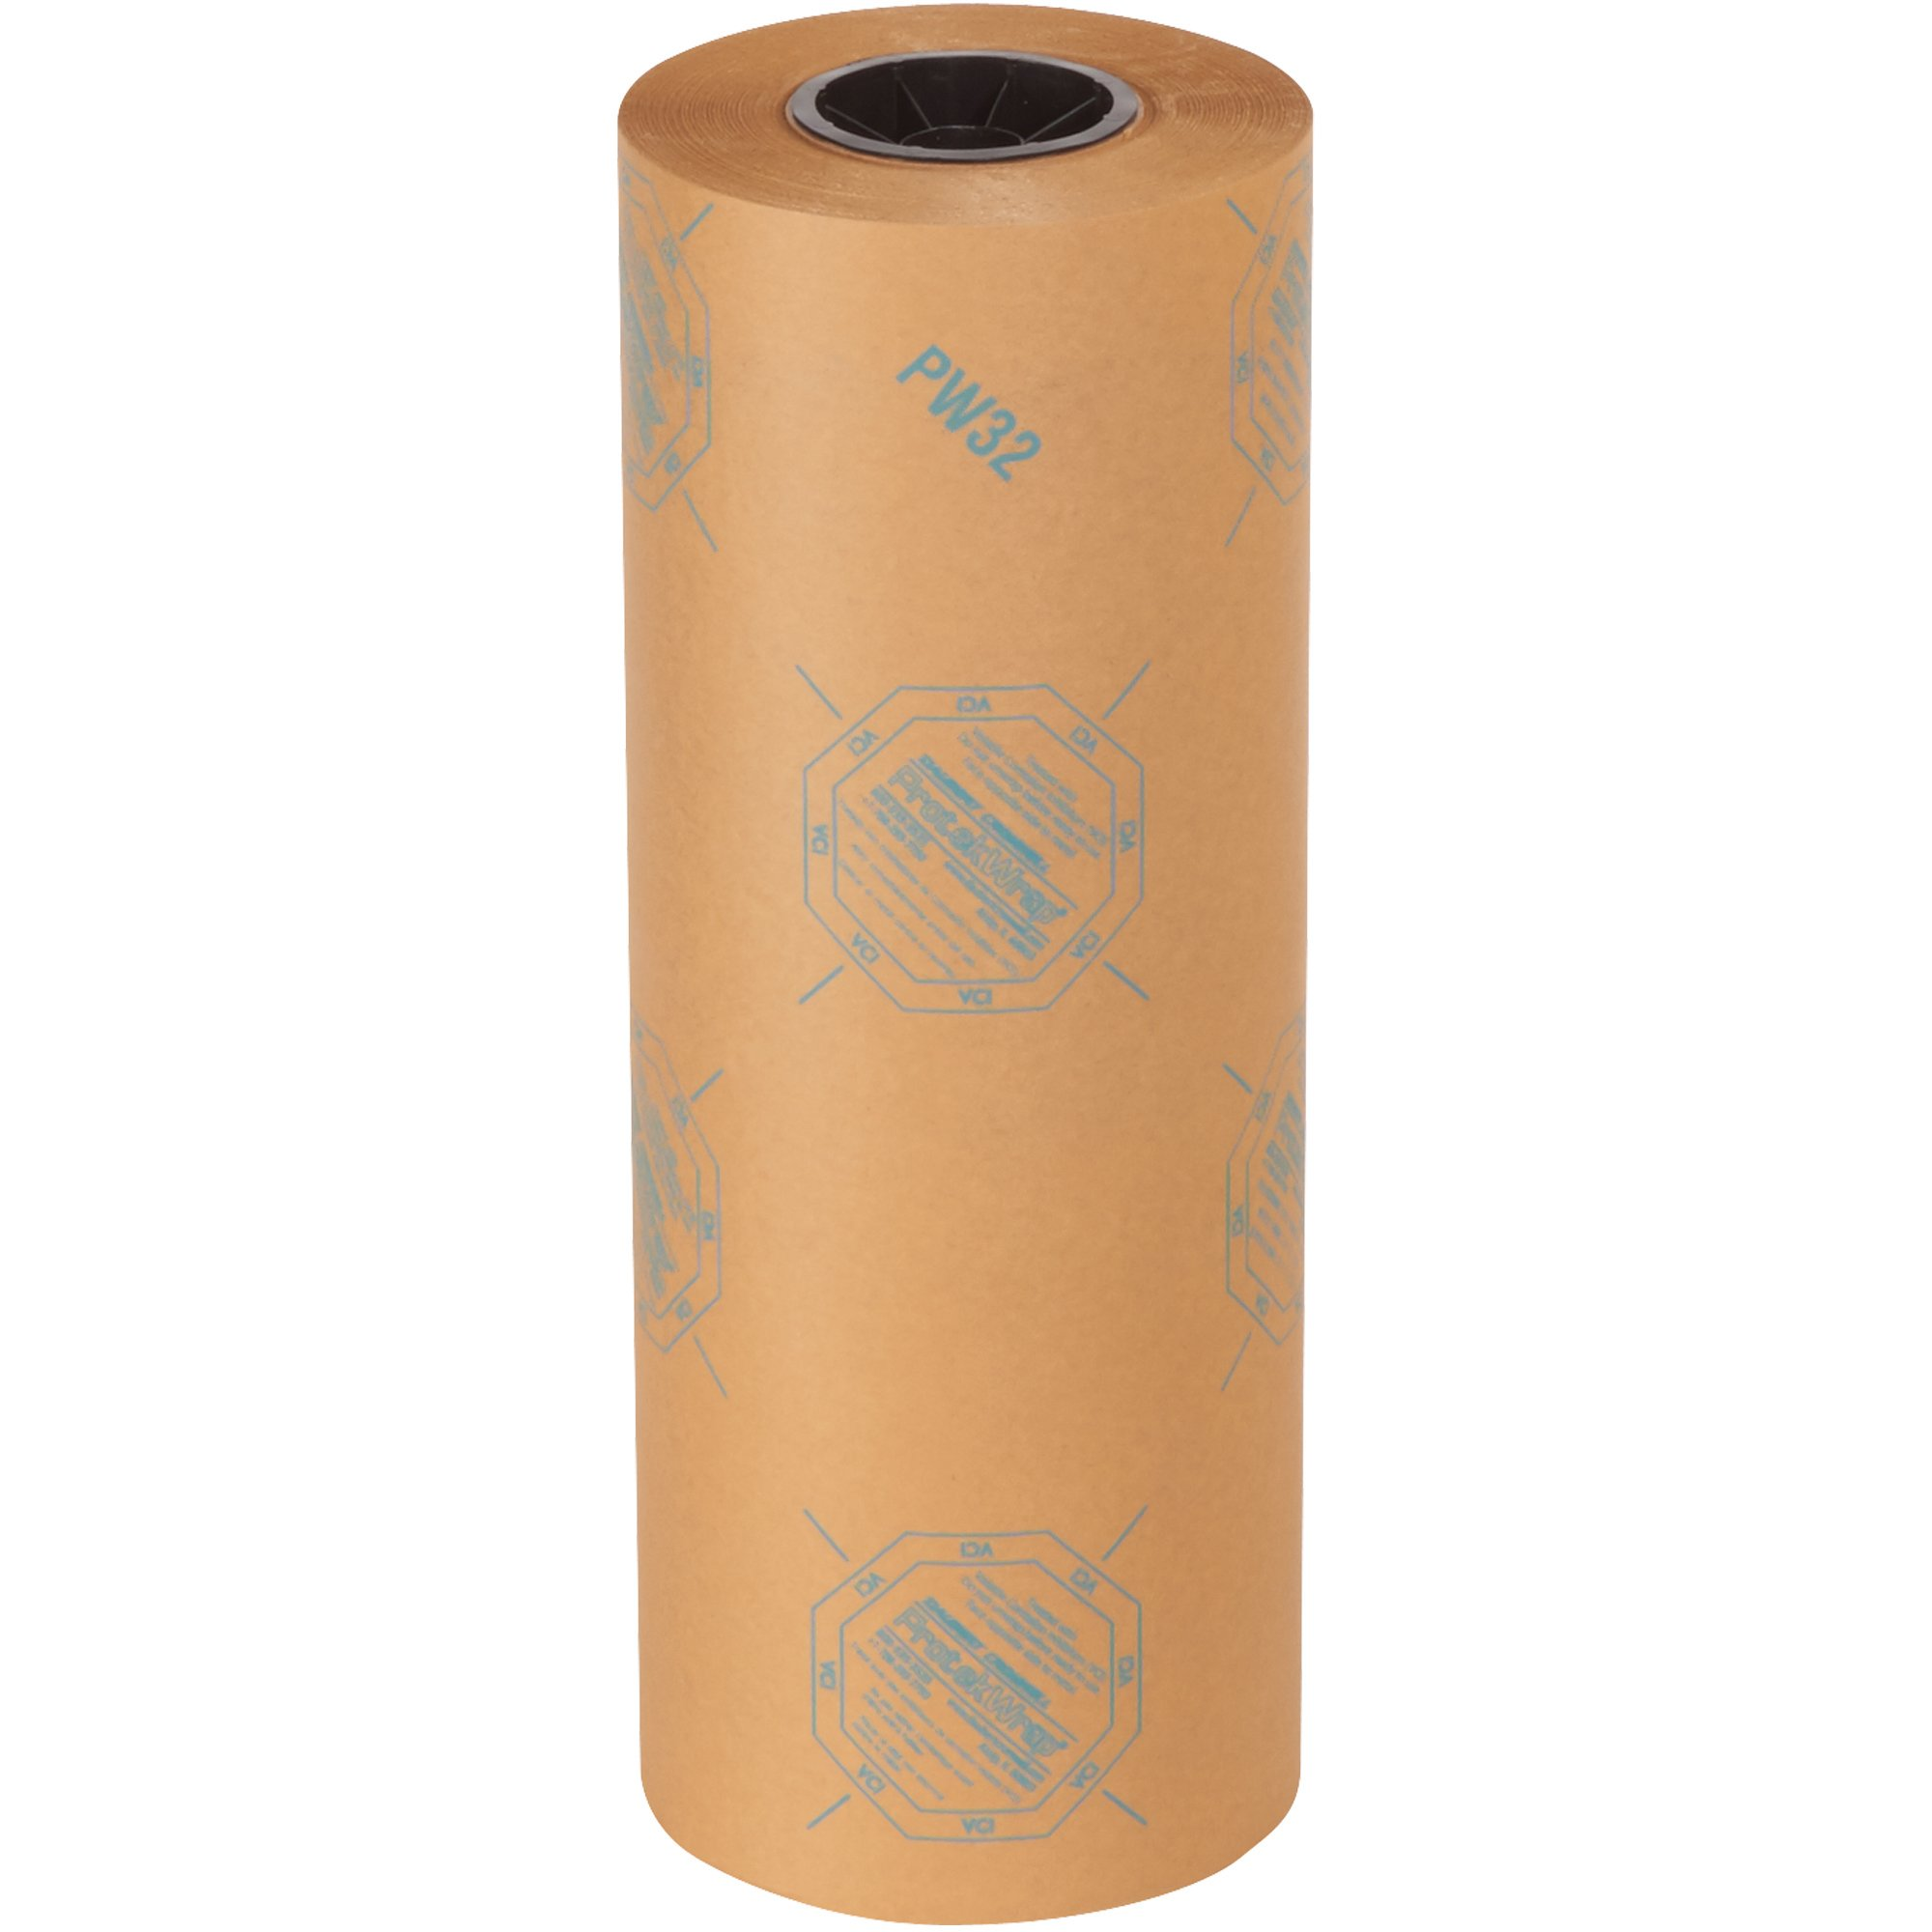 VCI Paper, Industrial Rolls, 35#, 18'' x 200 yds, Kraft, 1/Roll by Choice Shipping Supplies